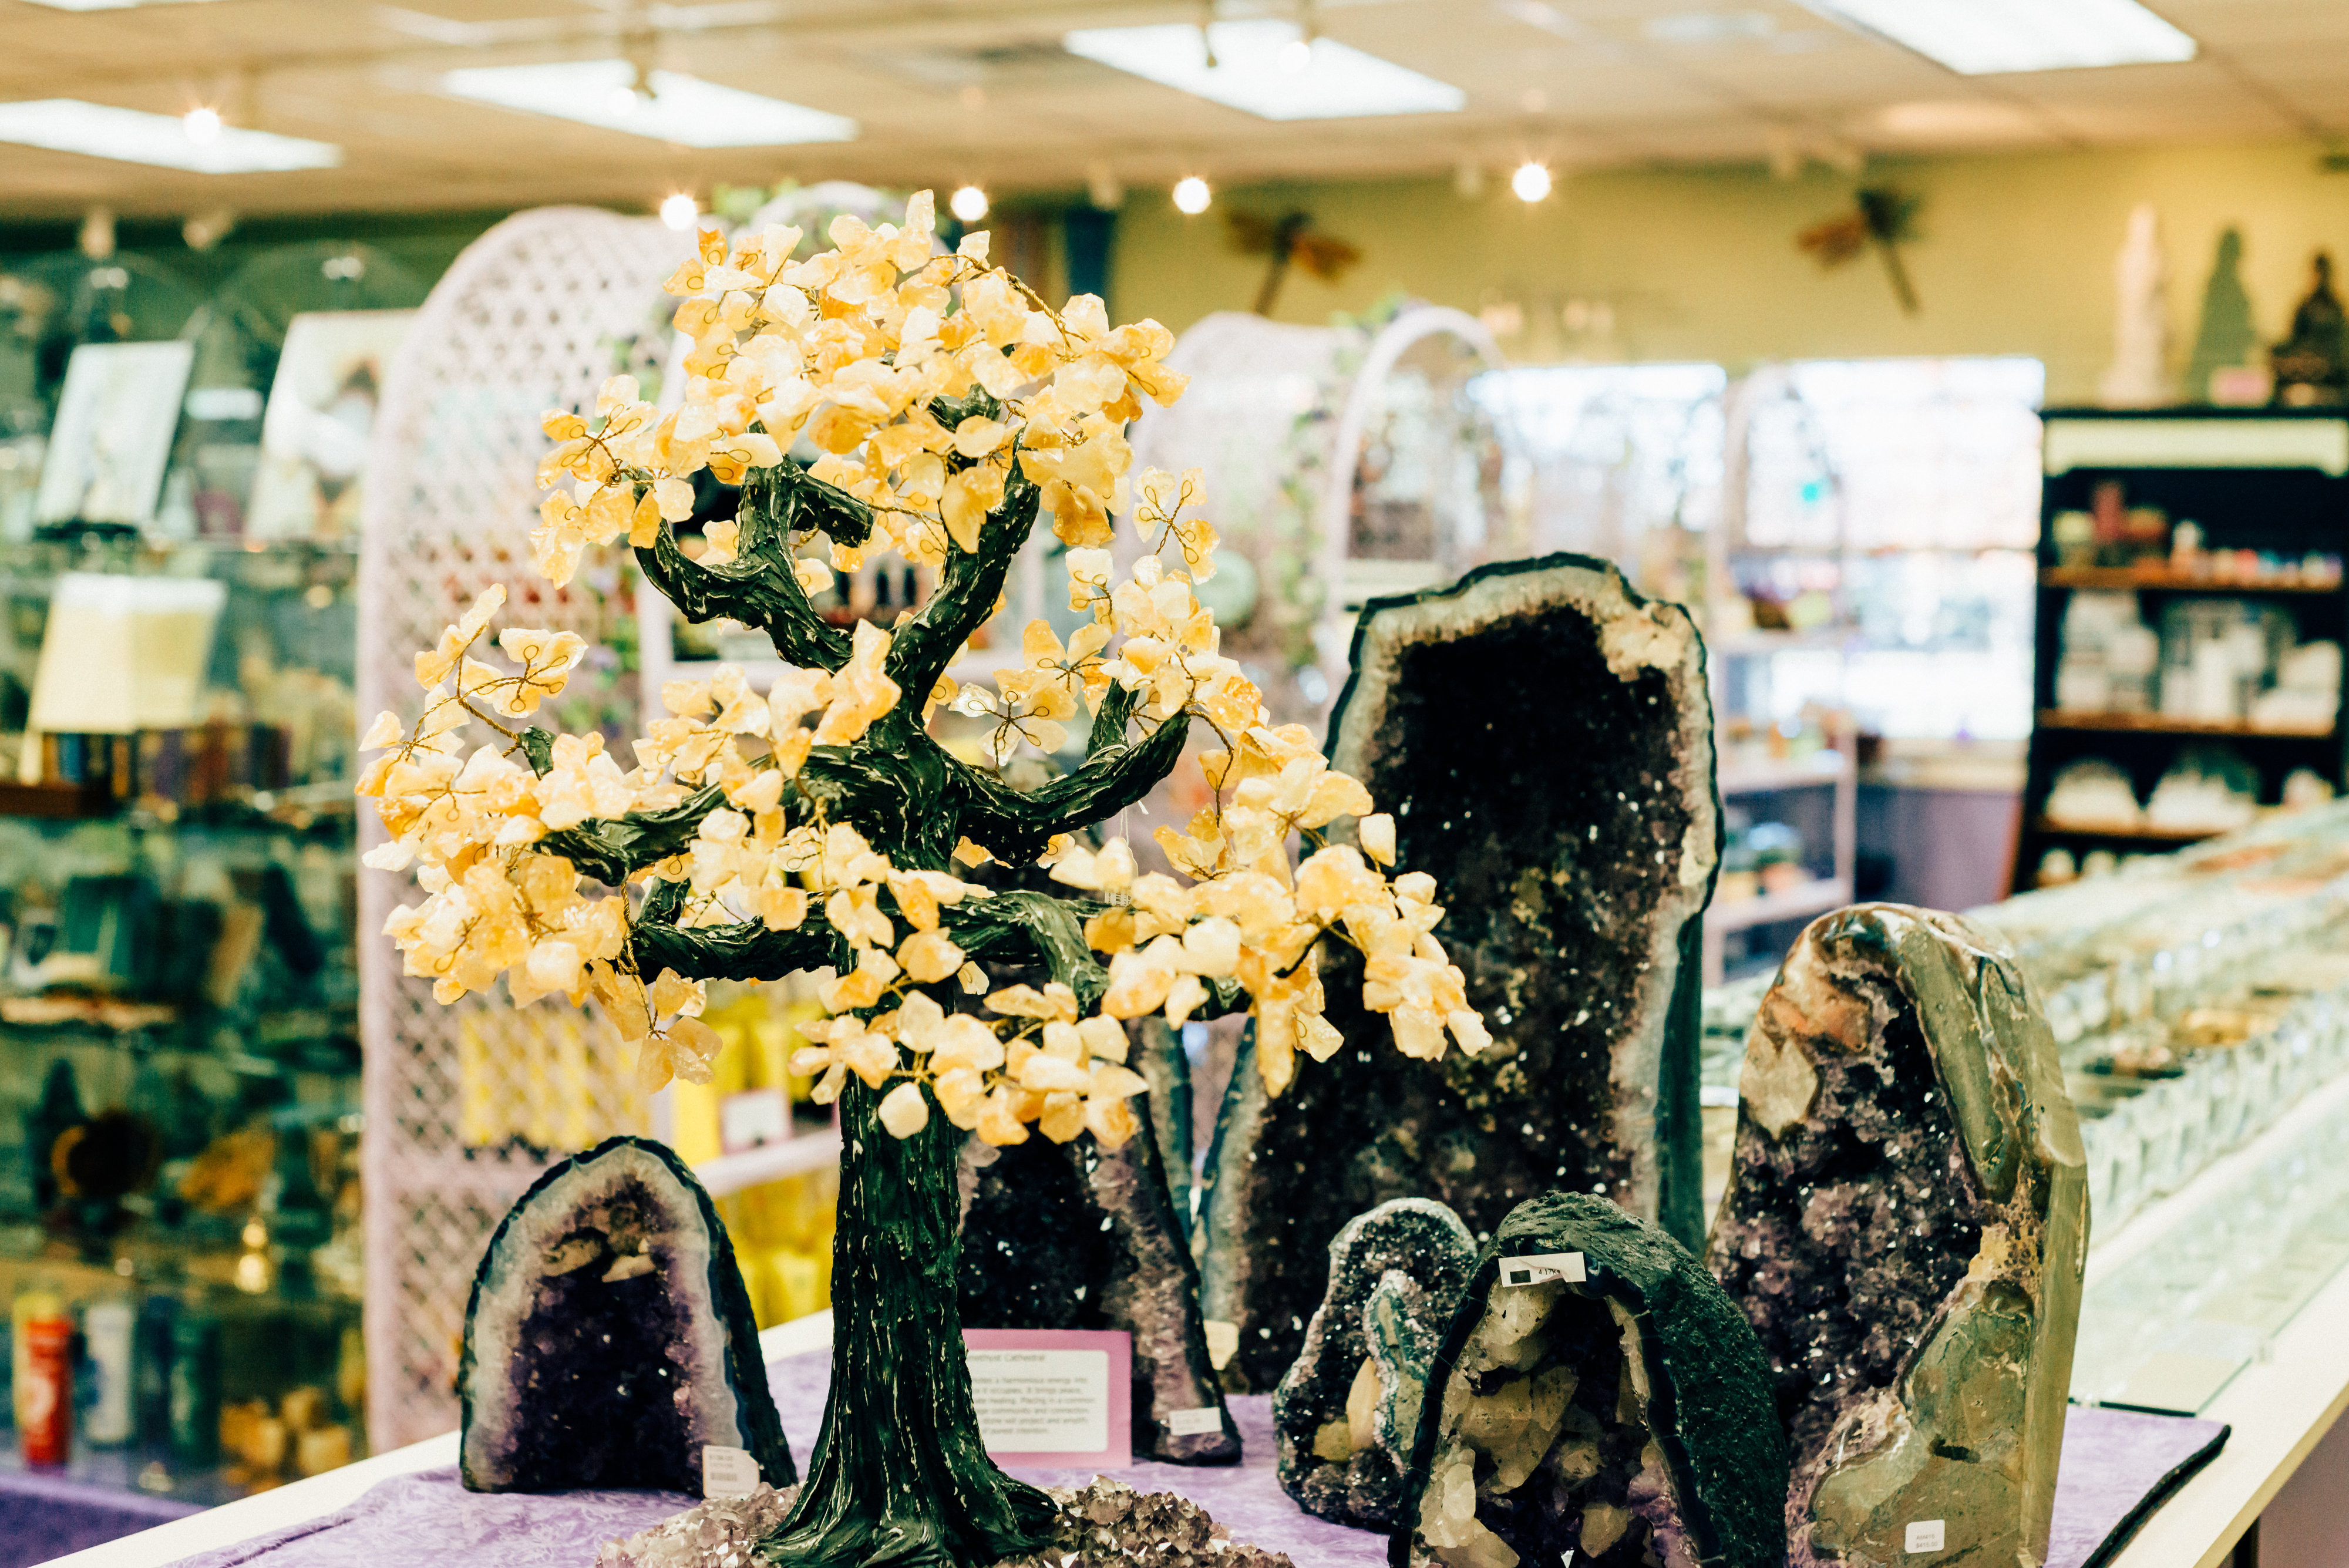 Gemstone Trees and Cathedrals